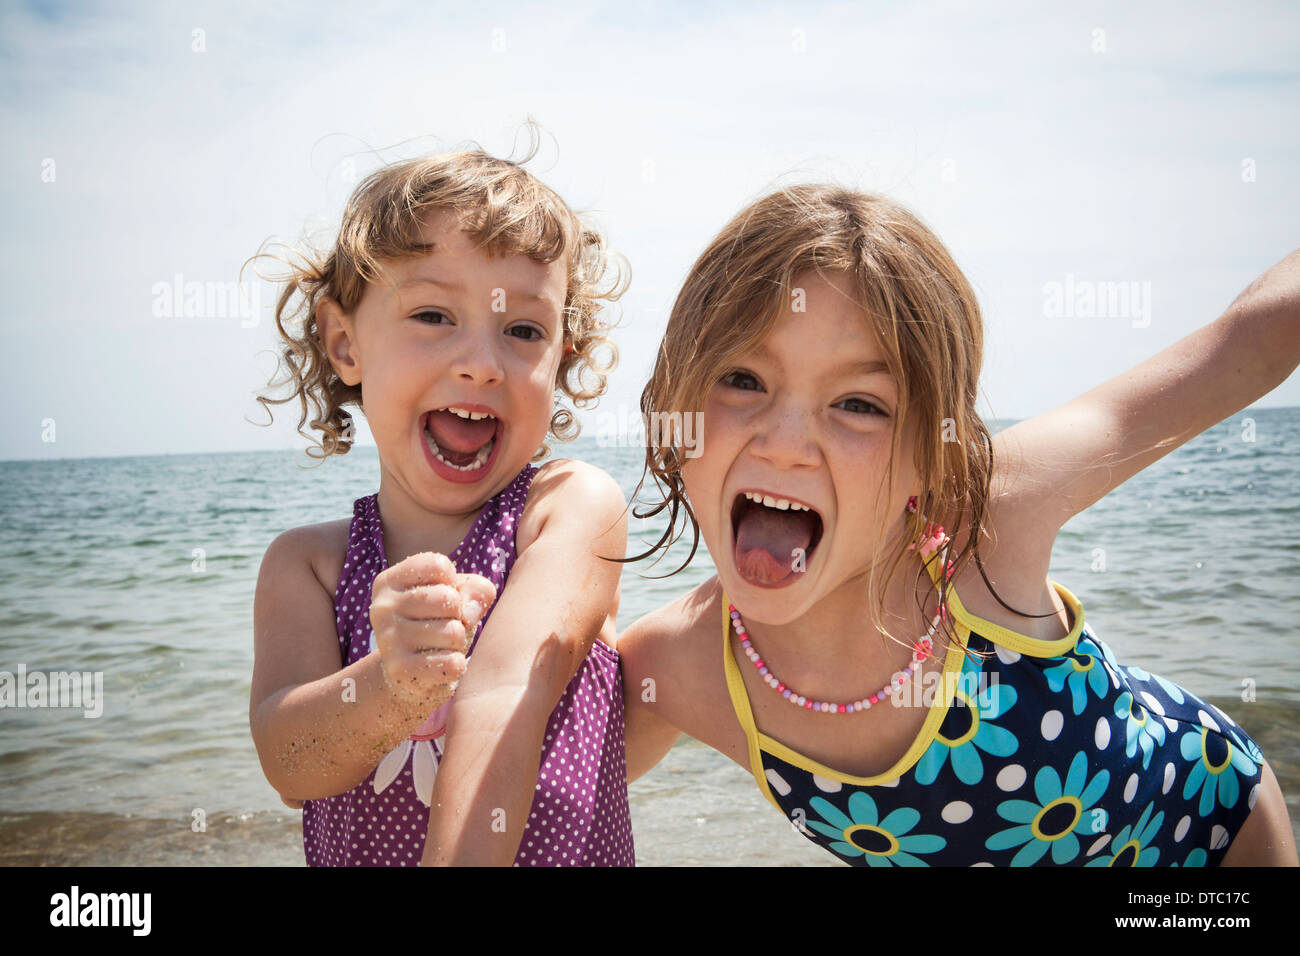 Portrait of two sisters pulling faces on beach at Falmouth, Massachusetts, USA - Stock Image